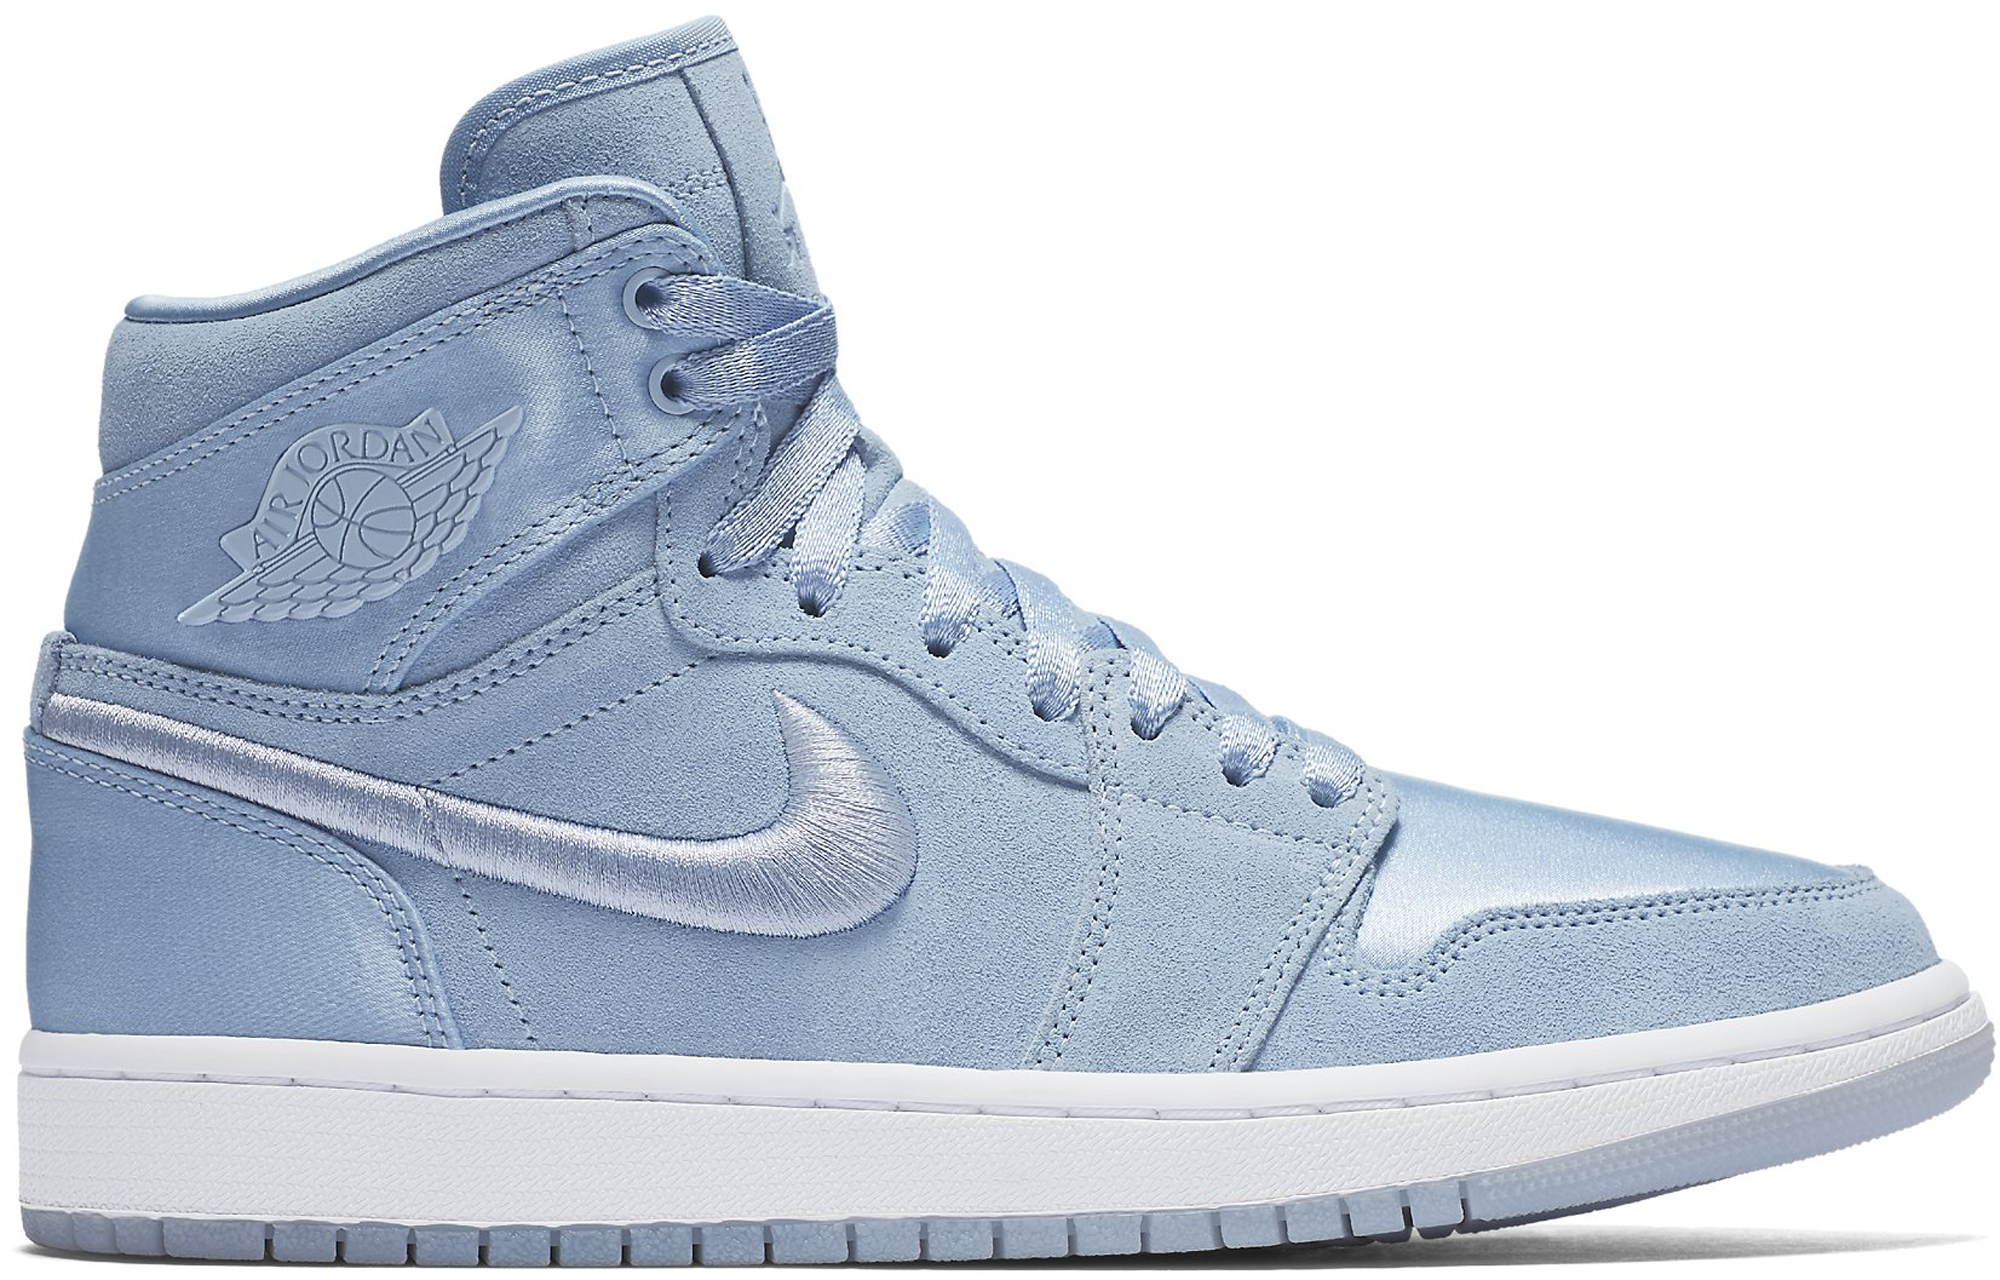 watch e3de4 fd3f9 Women's Air Jordan 1 Retro High SOH Hydrogen Blue - StockX News